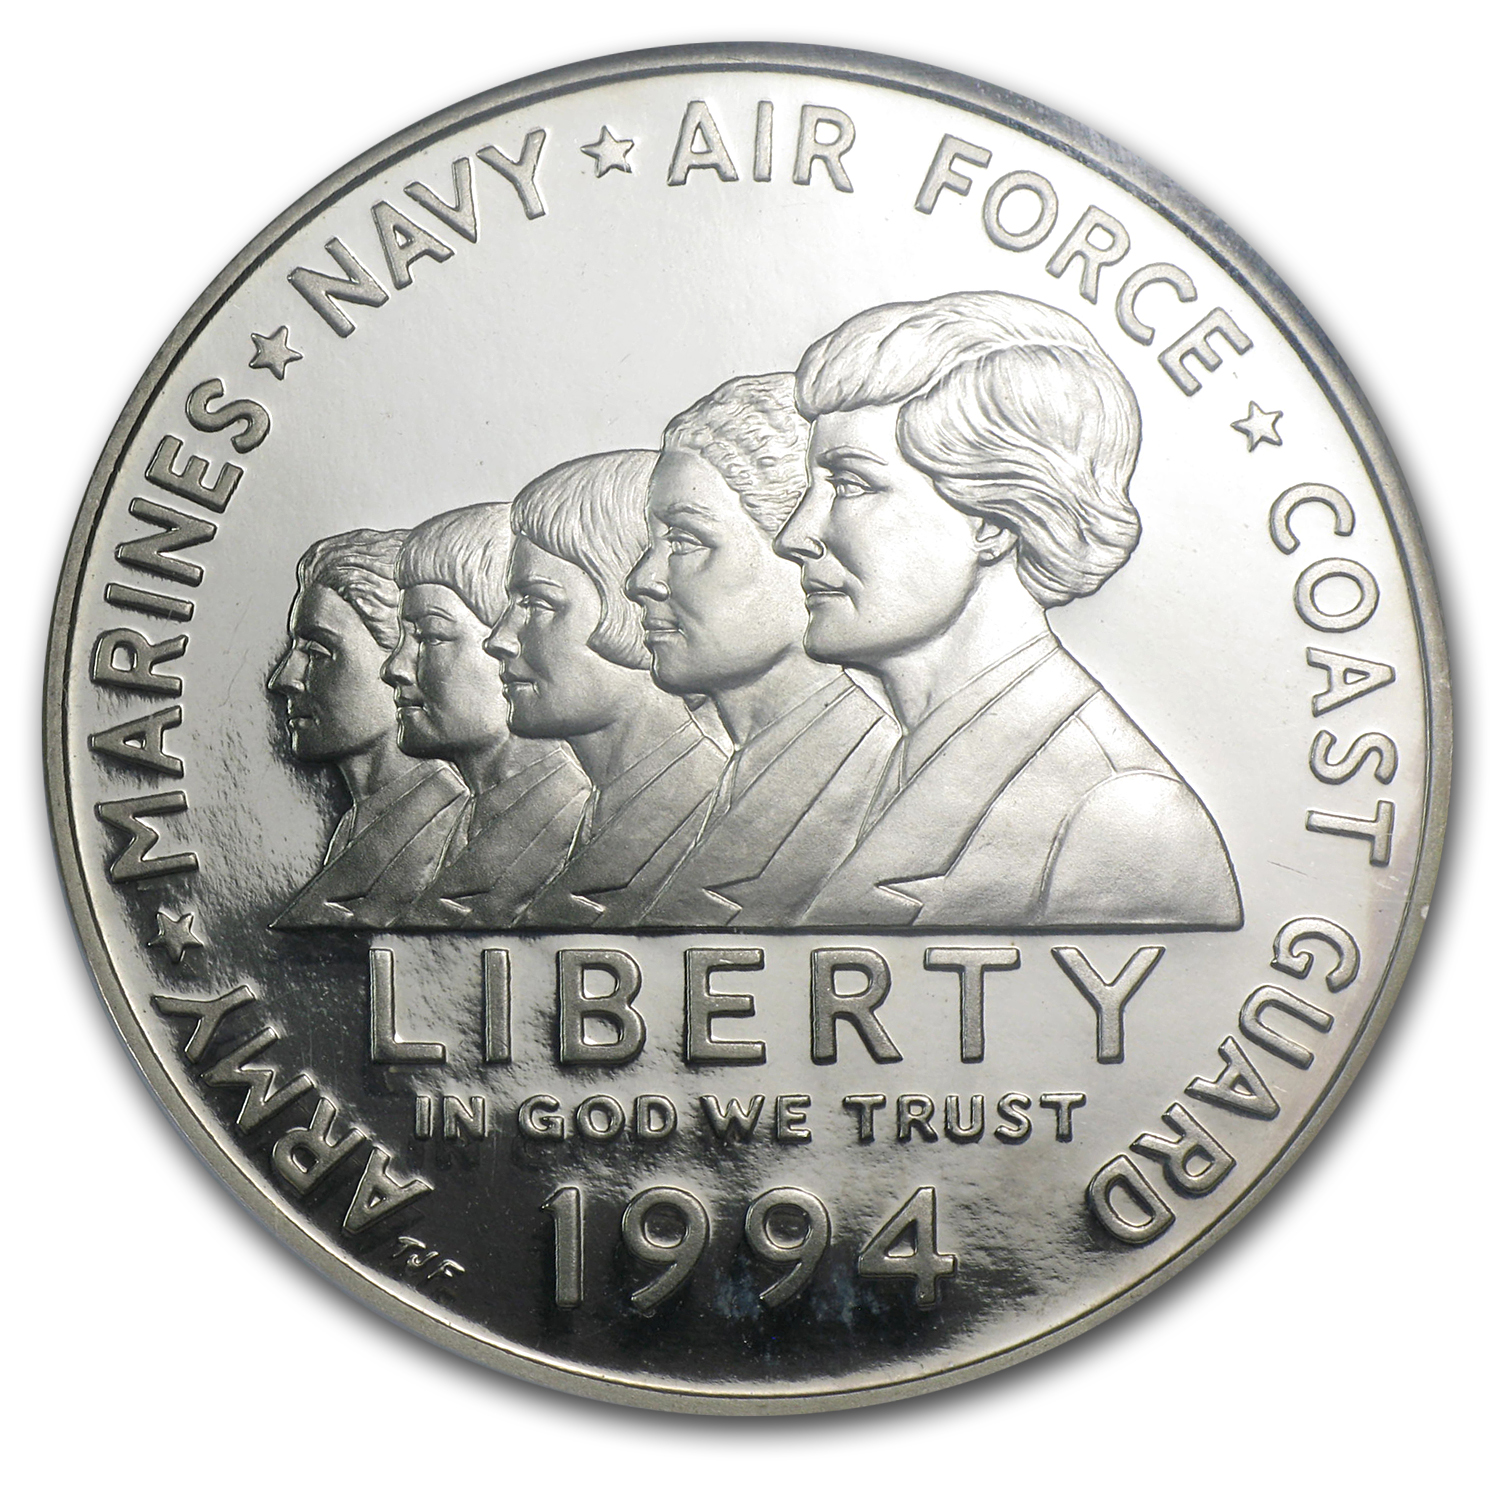 1994-P Women in Military $1 Silver Commemorative PF-69 NGC